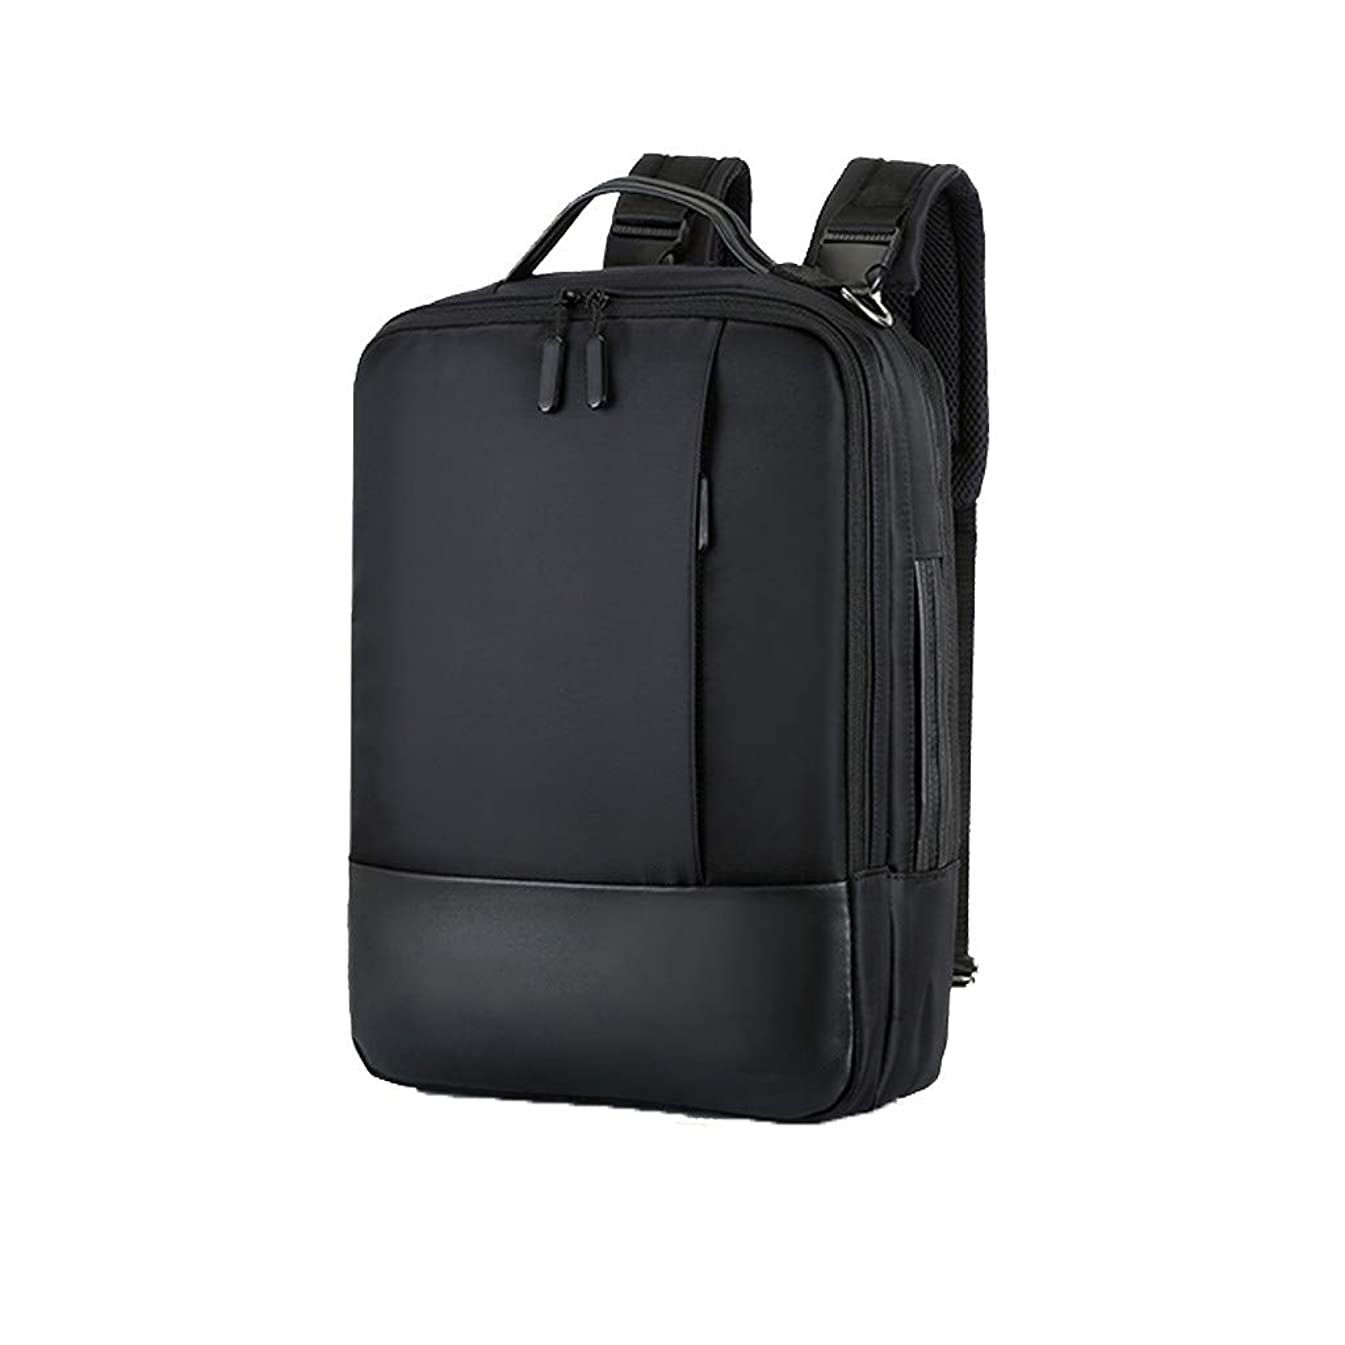 SMALLE ??? Anti-Theft Laptop Backpack with USB Port, Men Premium Anti-Theft Laptop School Travel Waterproof Backpack